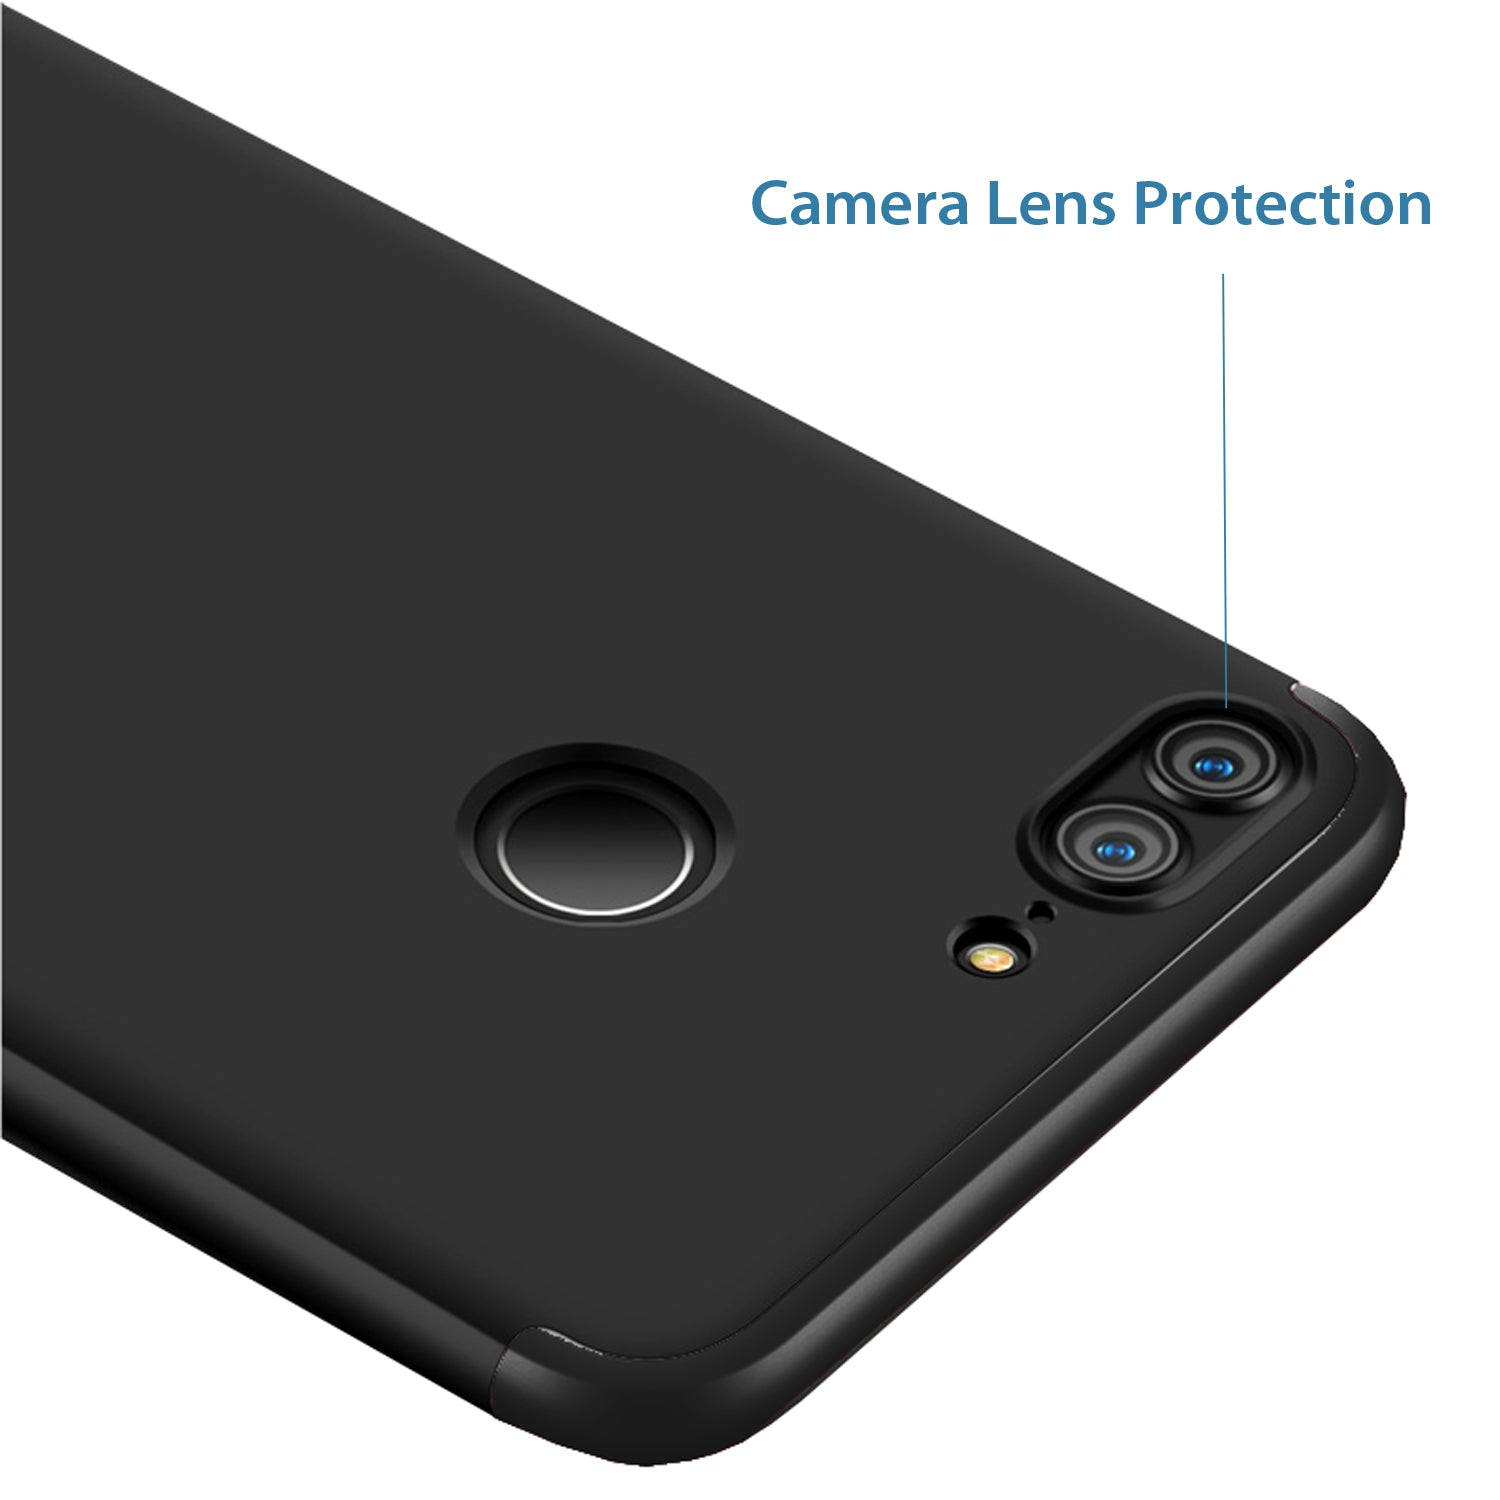 3 in 1 - 360° Full Protection Body Case Cover for Huawei Honor 9 Lite - Black - Mobizang